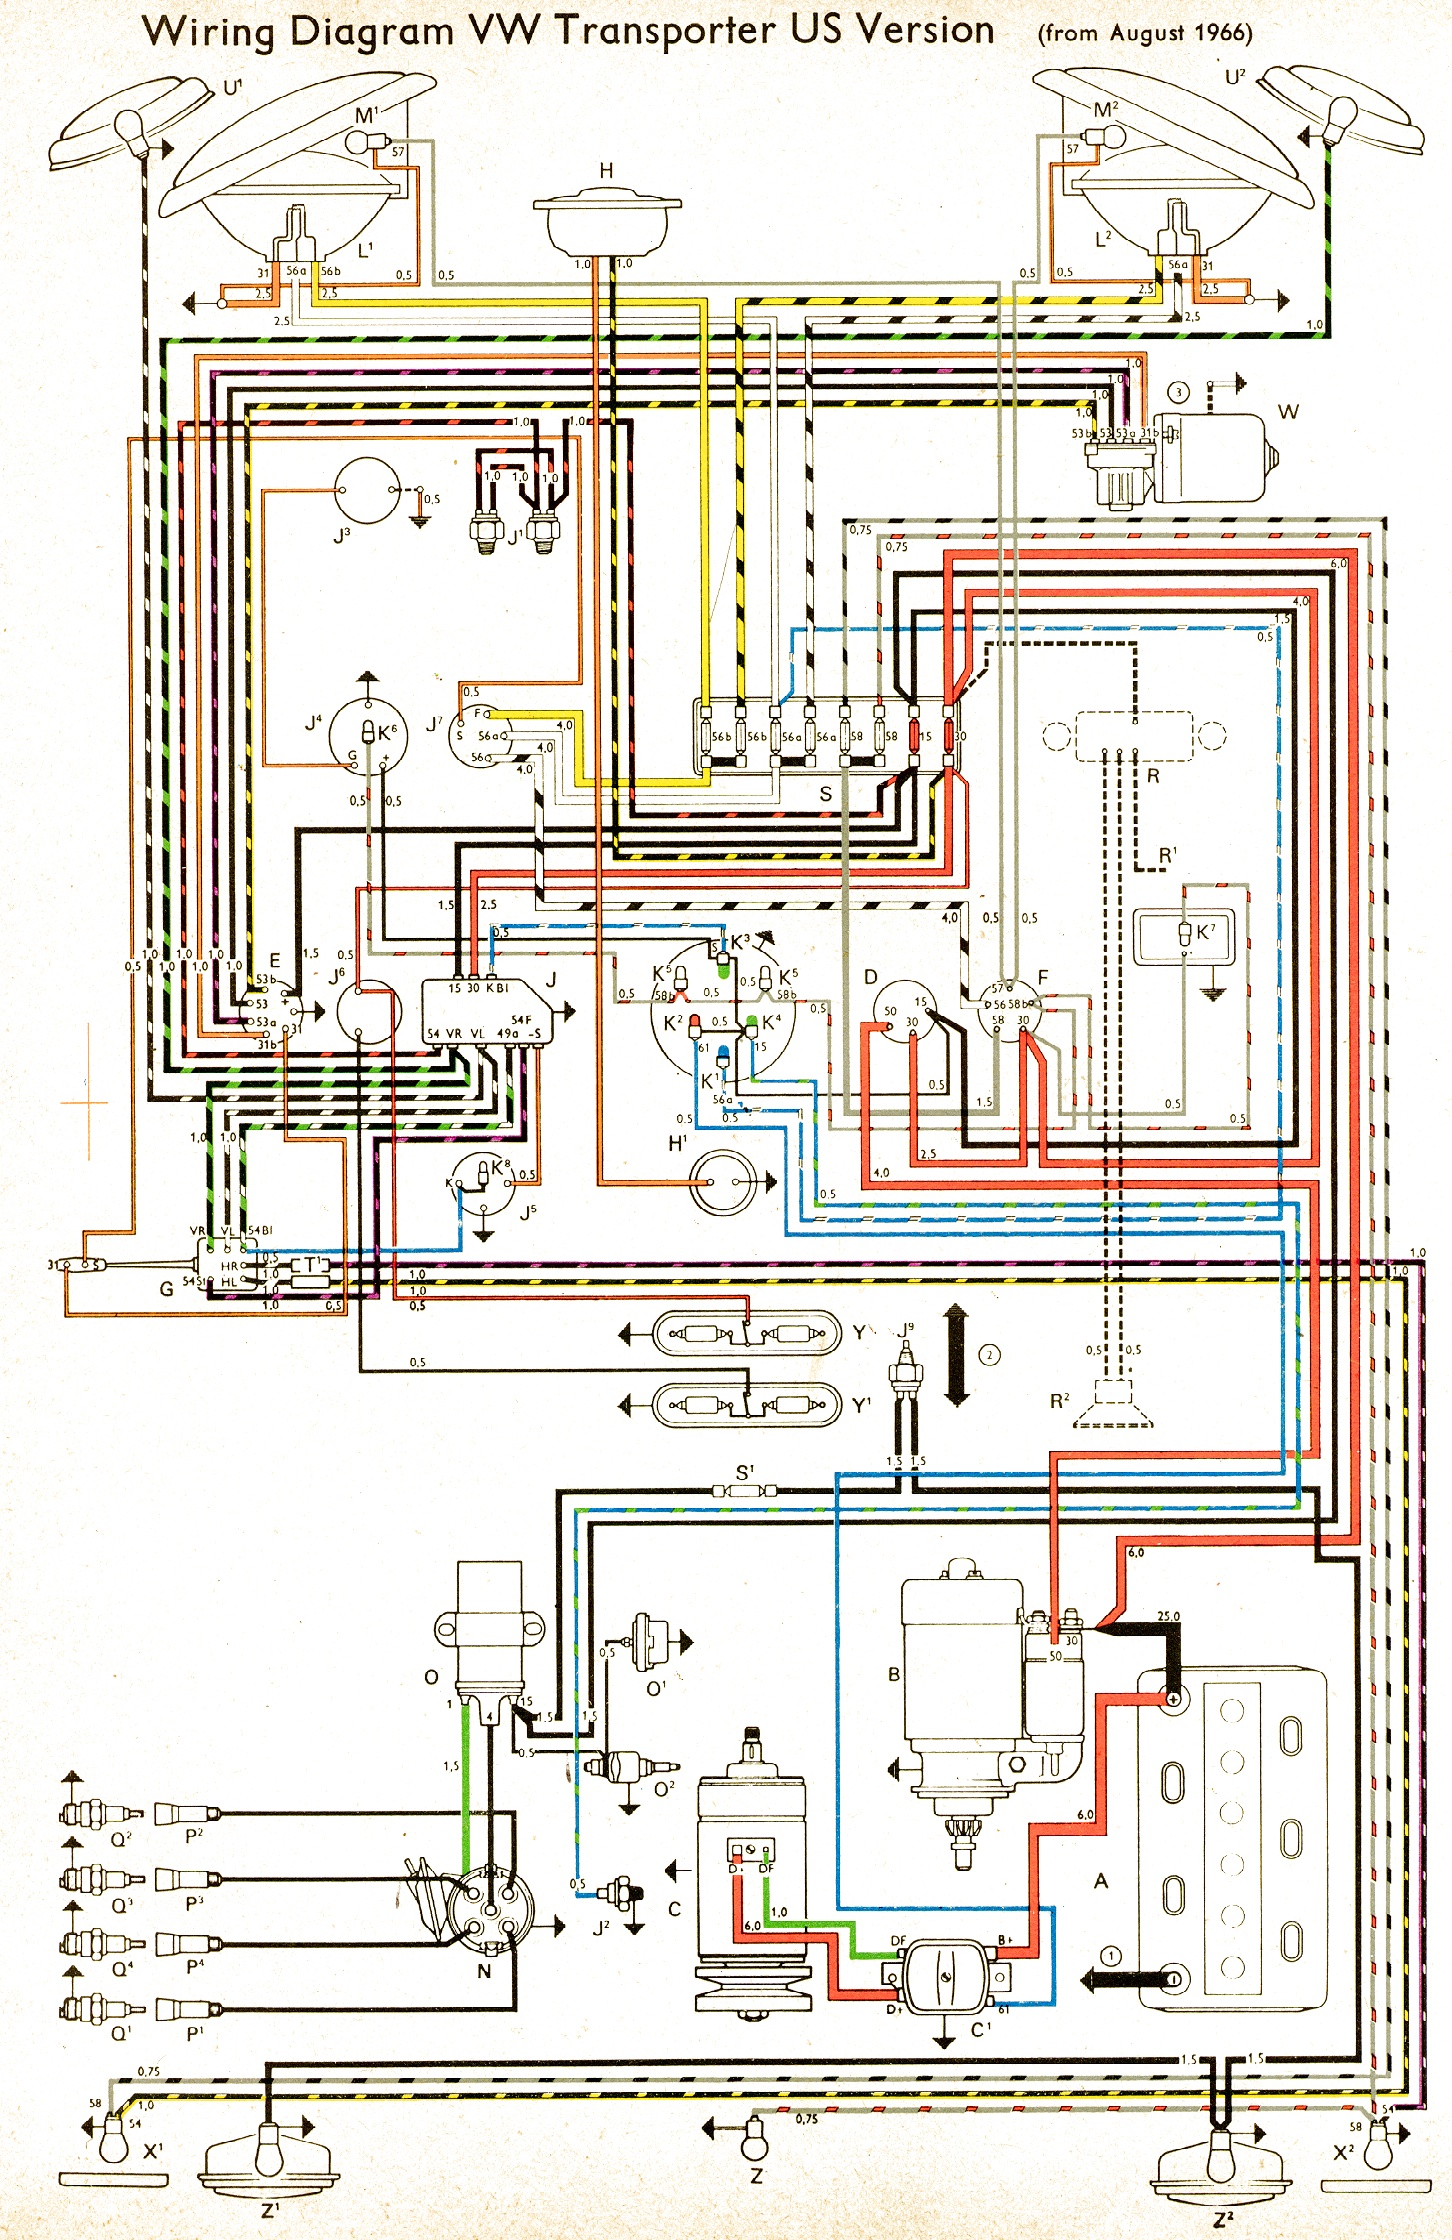 VW Bus Wiring Diagram on 1973 Vw Beetle Fuse Box Diagram